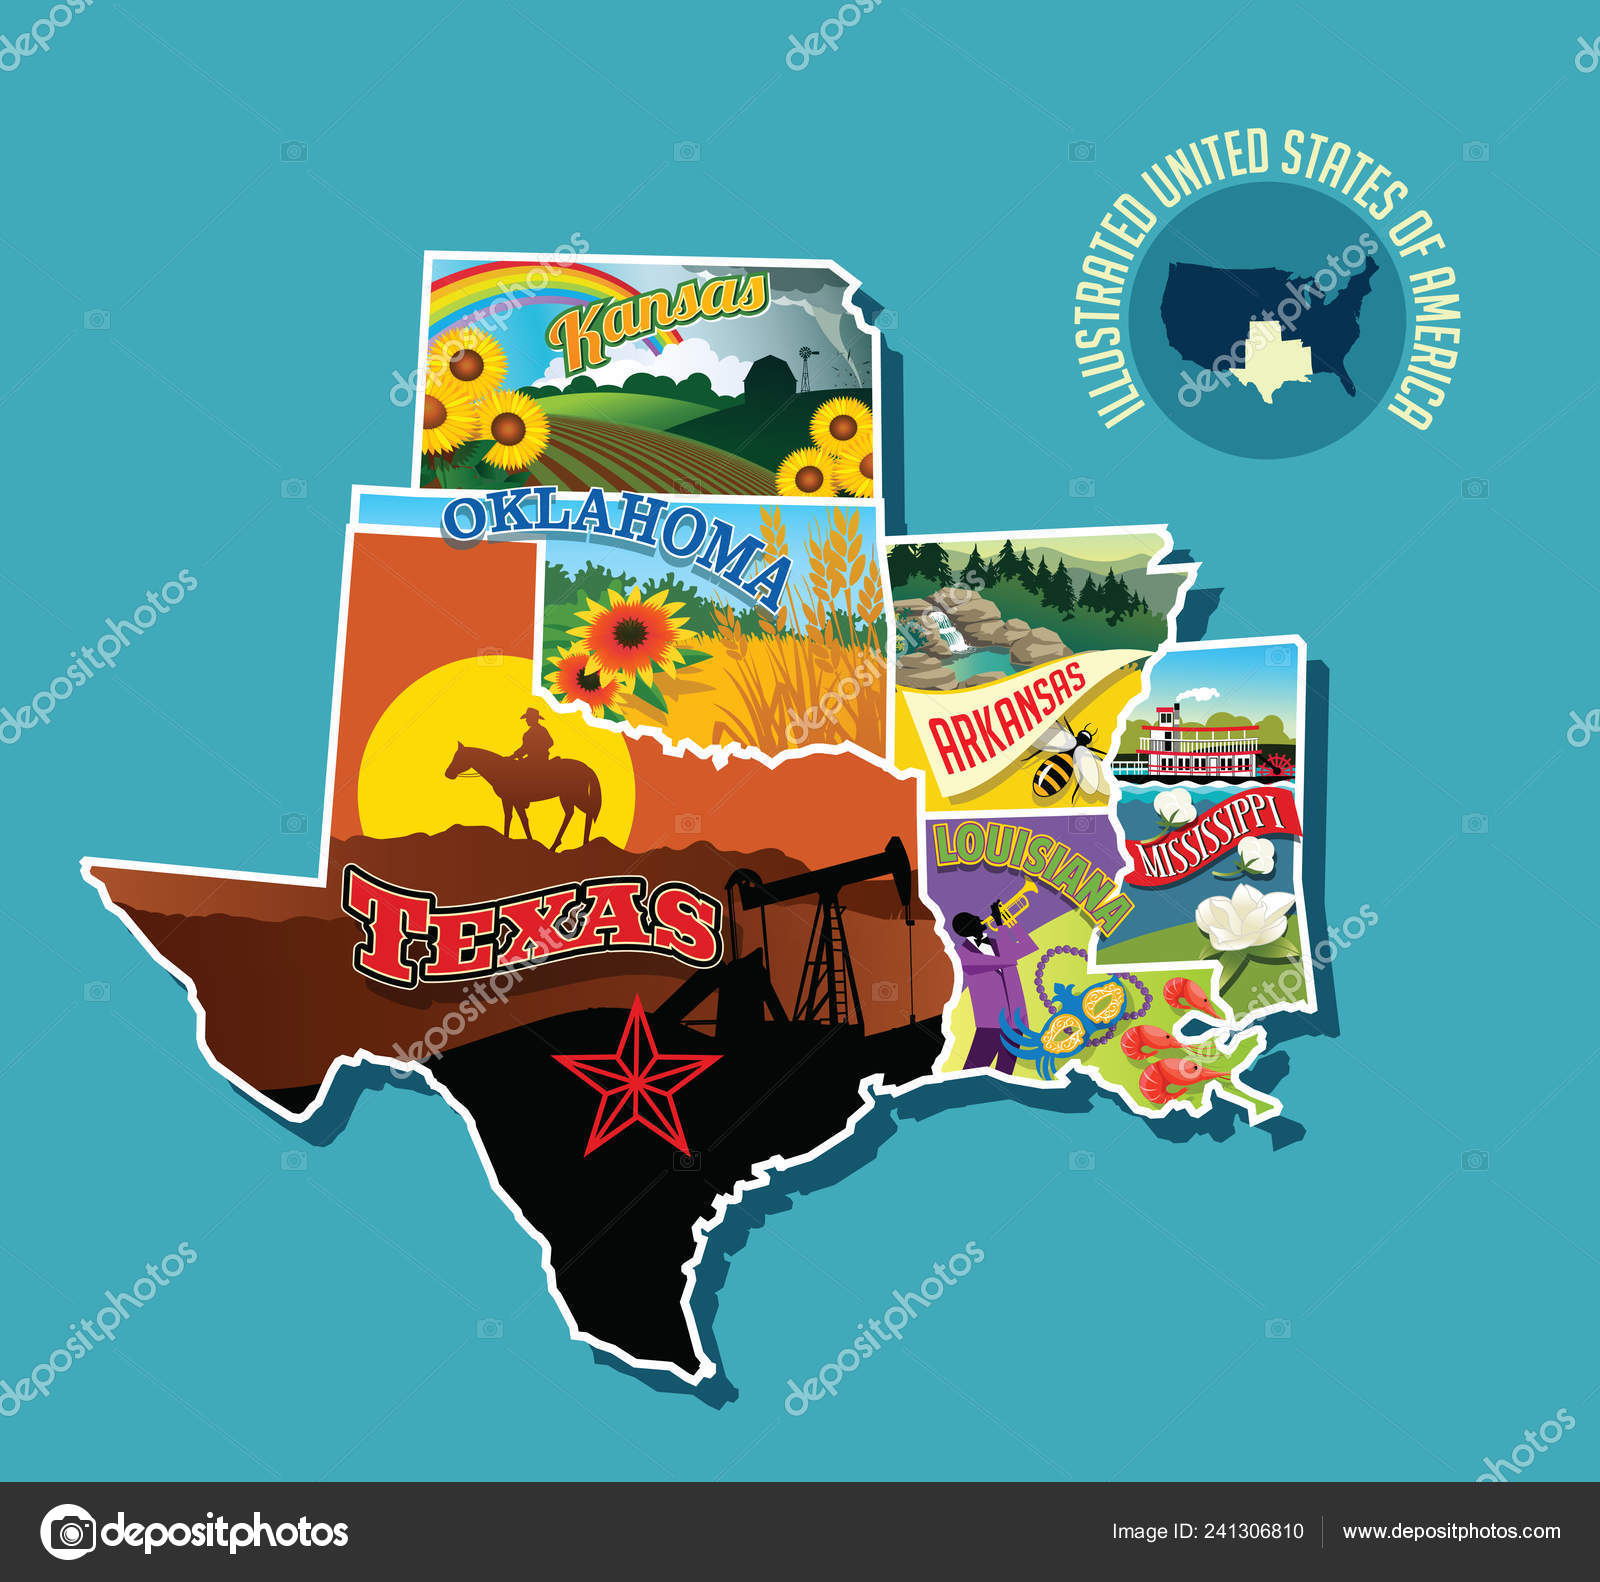 Map Of Texas Oklahoma And Louisiana.Illustrated Pictorial Map South Central United States Includes